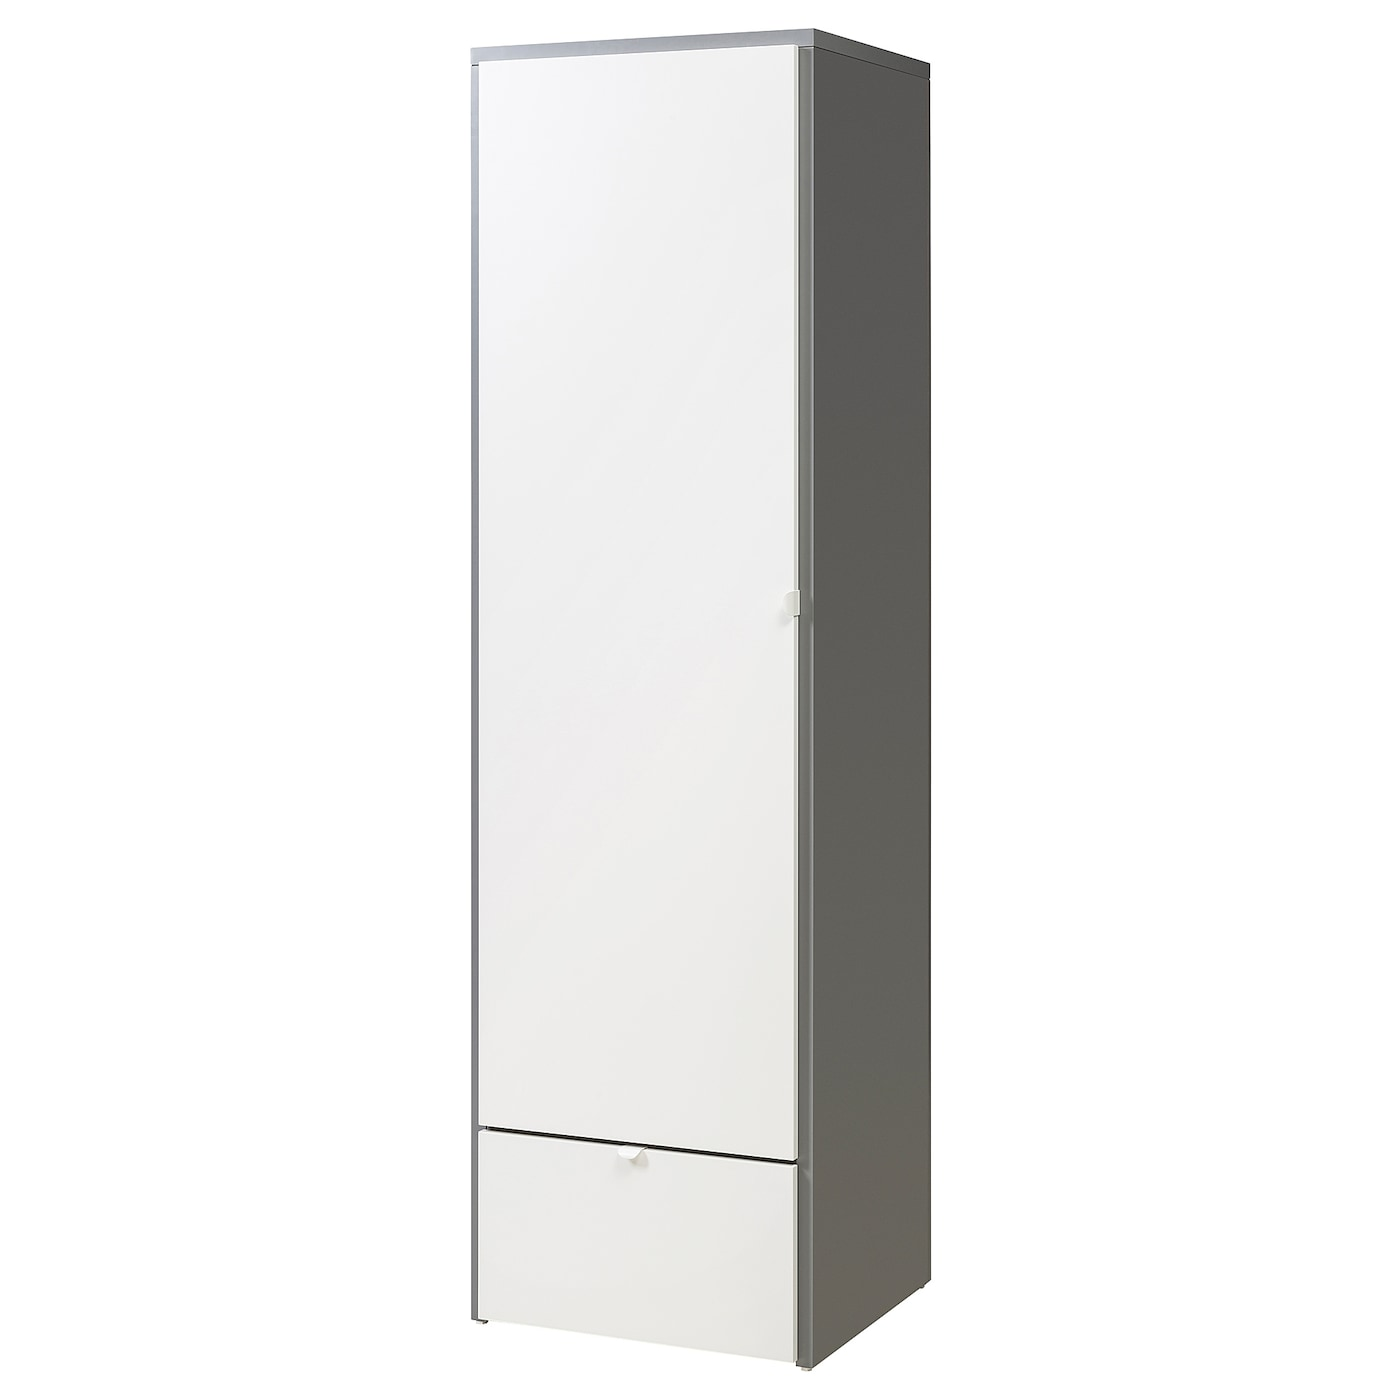 Visthus wardrobe grey white 63x59x216 cm ikea for Porte 60 x 70